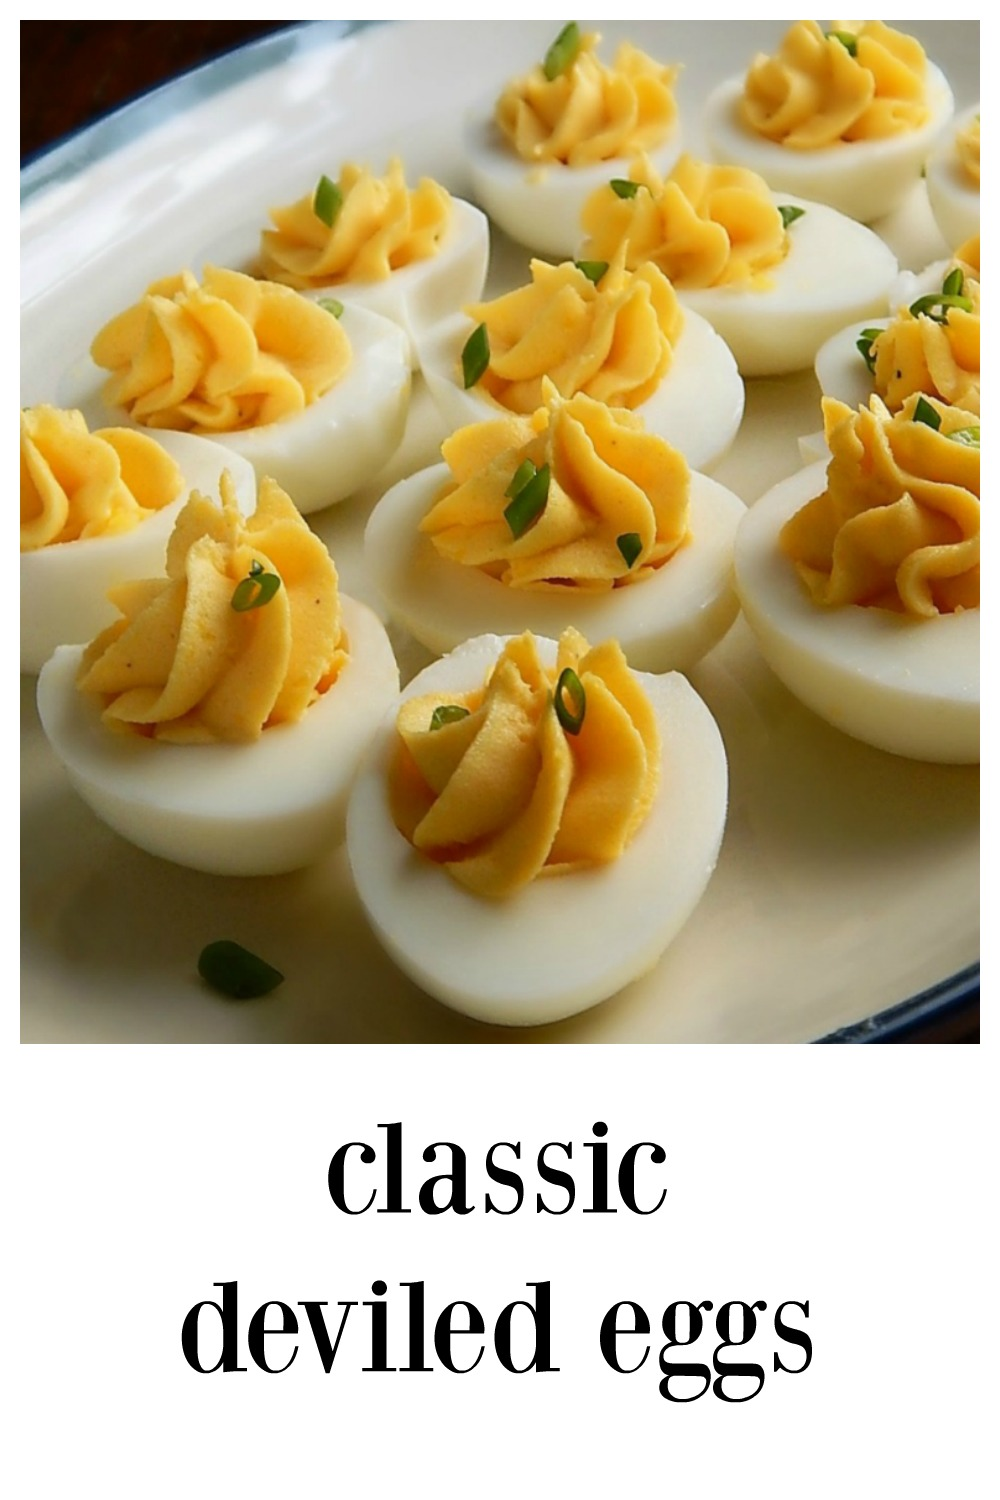 These Classic Deviled Eggs are glorious every time with no fuss or bother. I'm giving you all of my little tips and tricks to make the Best Deviled Eggs easy! Links to two recipes for Easy Peel Hard Boiled Eggs, one is steamed and the other an Instant Pot Recipe. #DeviledEggs #Cook'sIllustratedDeviledEggs #BestDeviledEggs #ClassicDeviledEggs